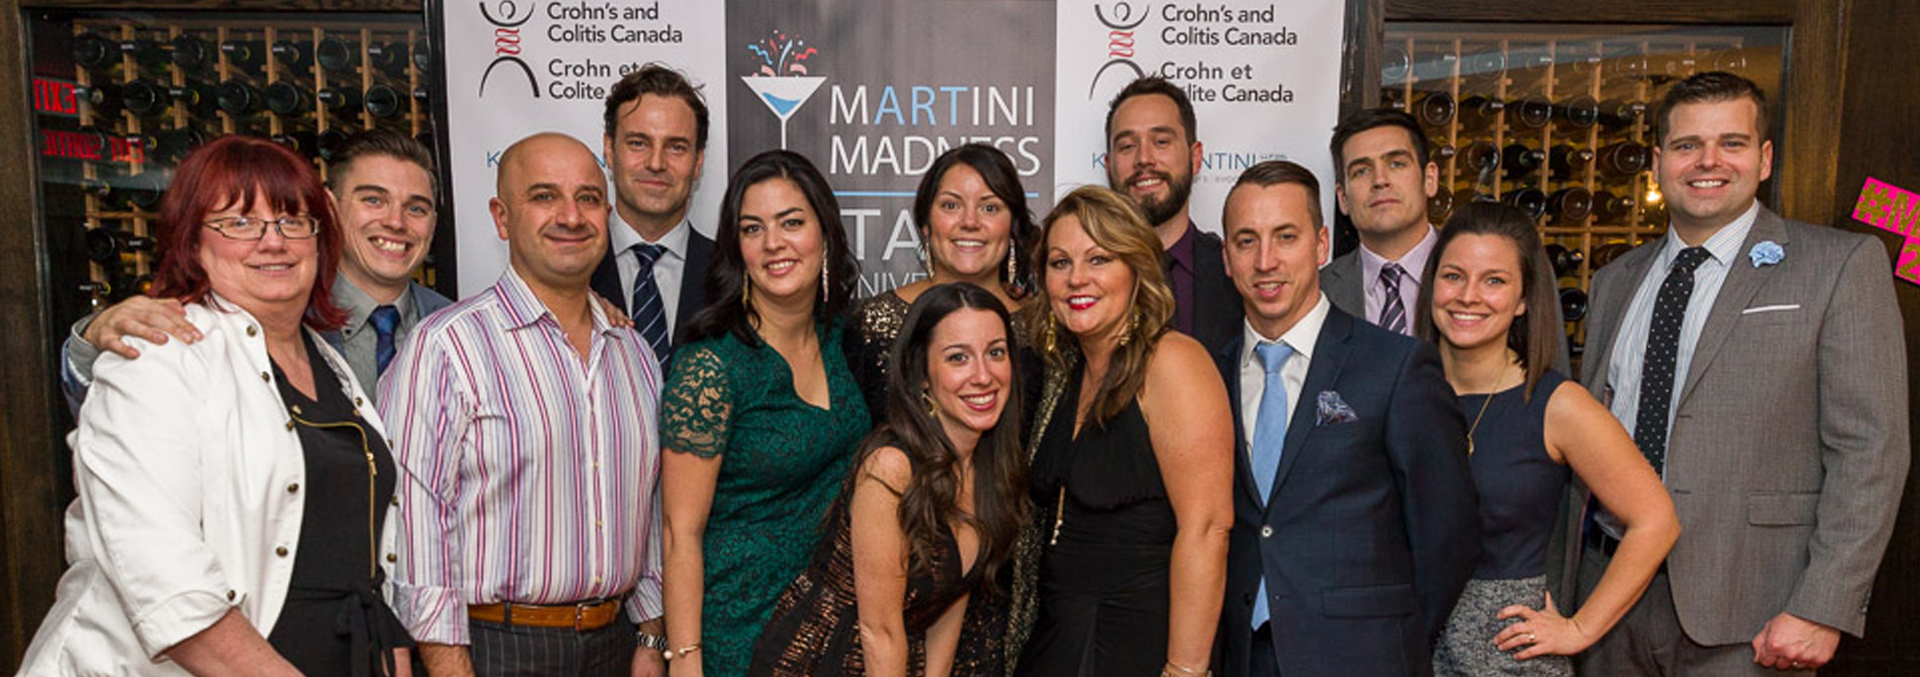 Martini Madness is back in Ottawa for its 12th year of fun and fundraising.